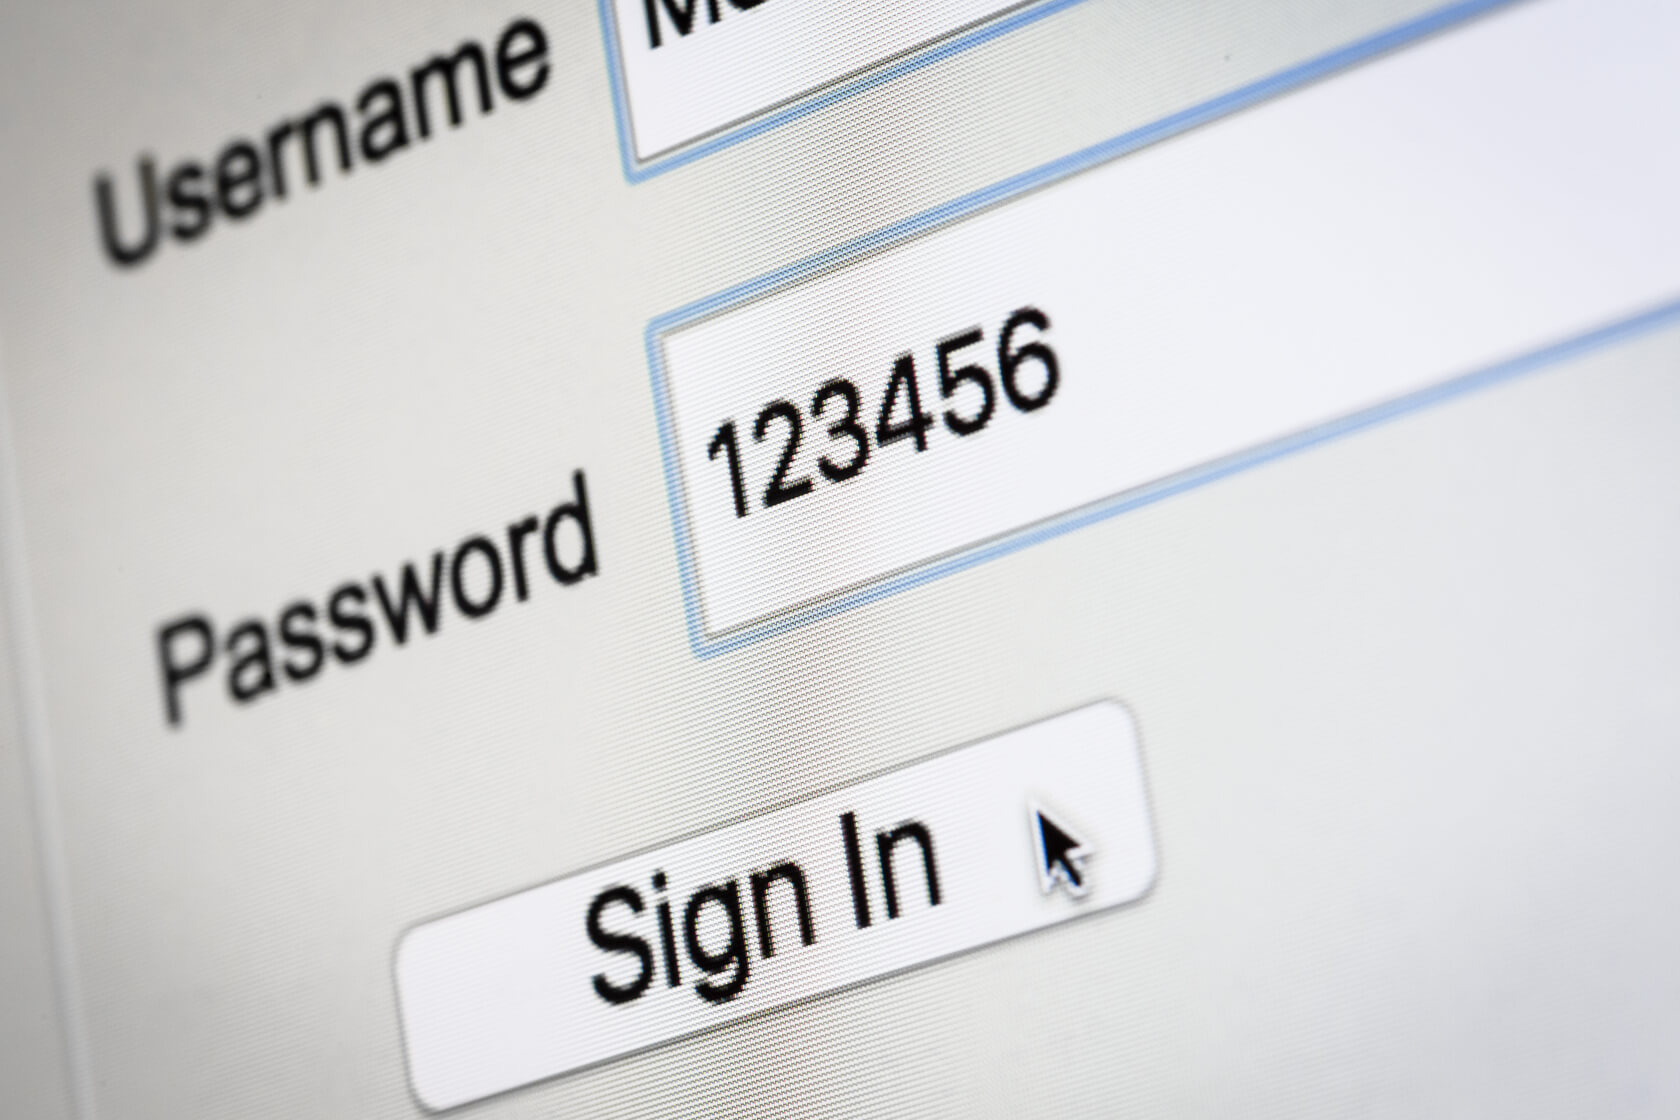 Worst passwords of 2017: '123456' comes top once again